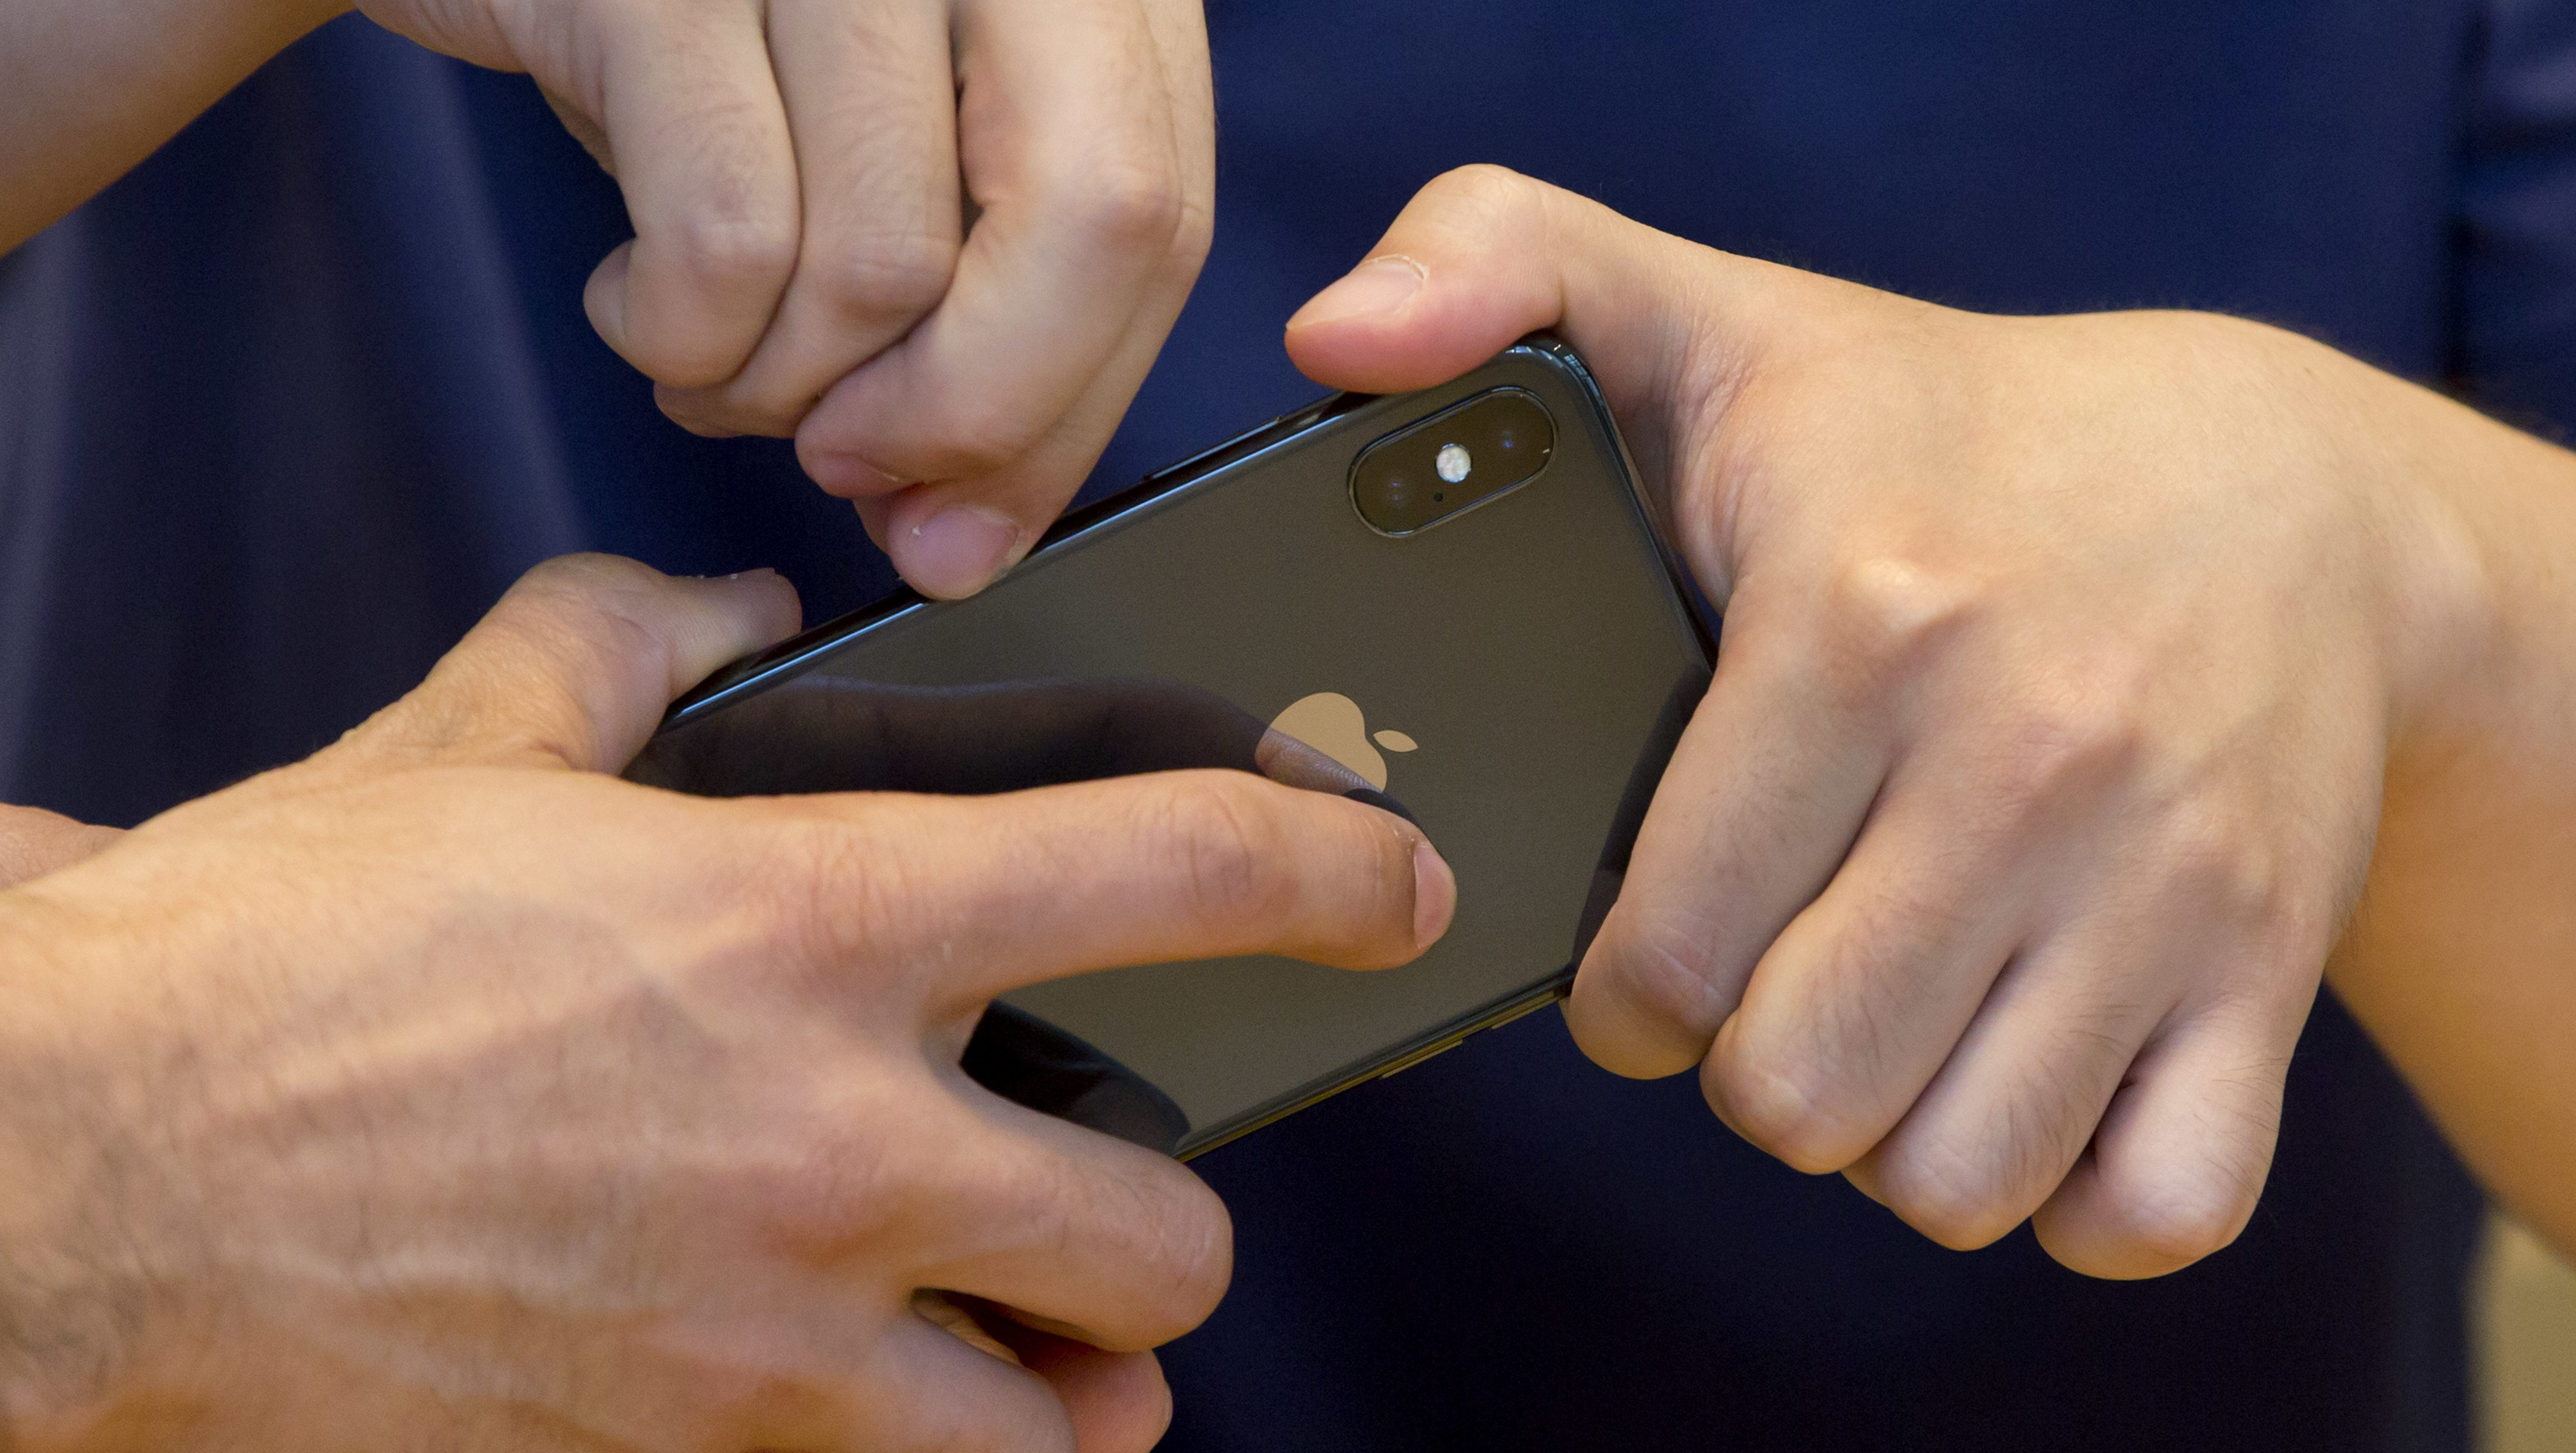 Due to cell phone radiation, California recommends texting instead